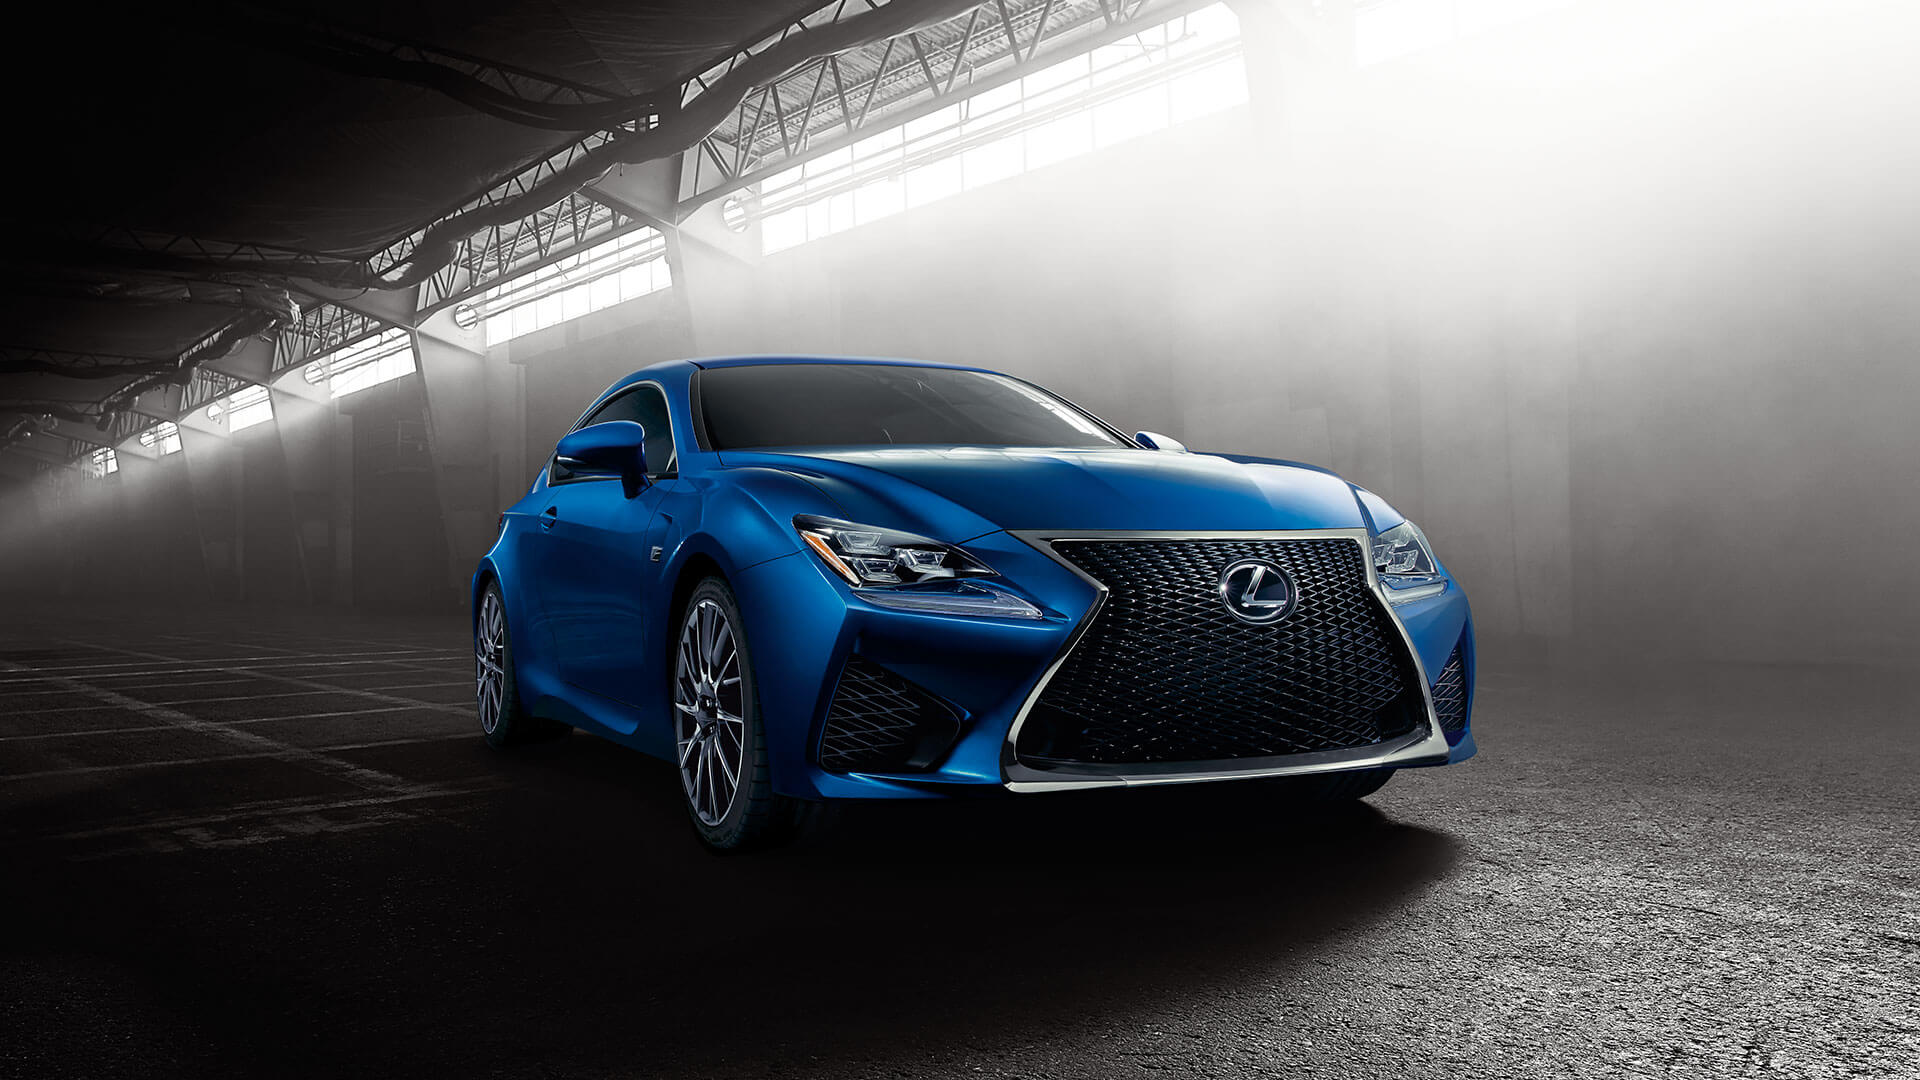 lexus f models section03 04